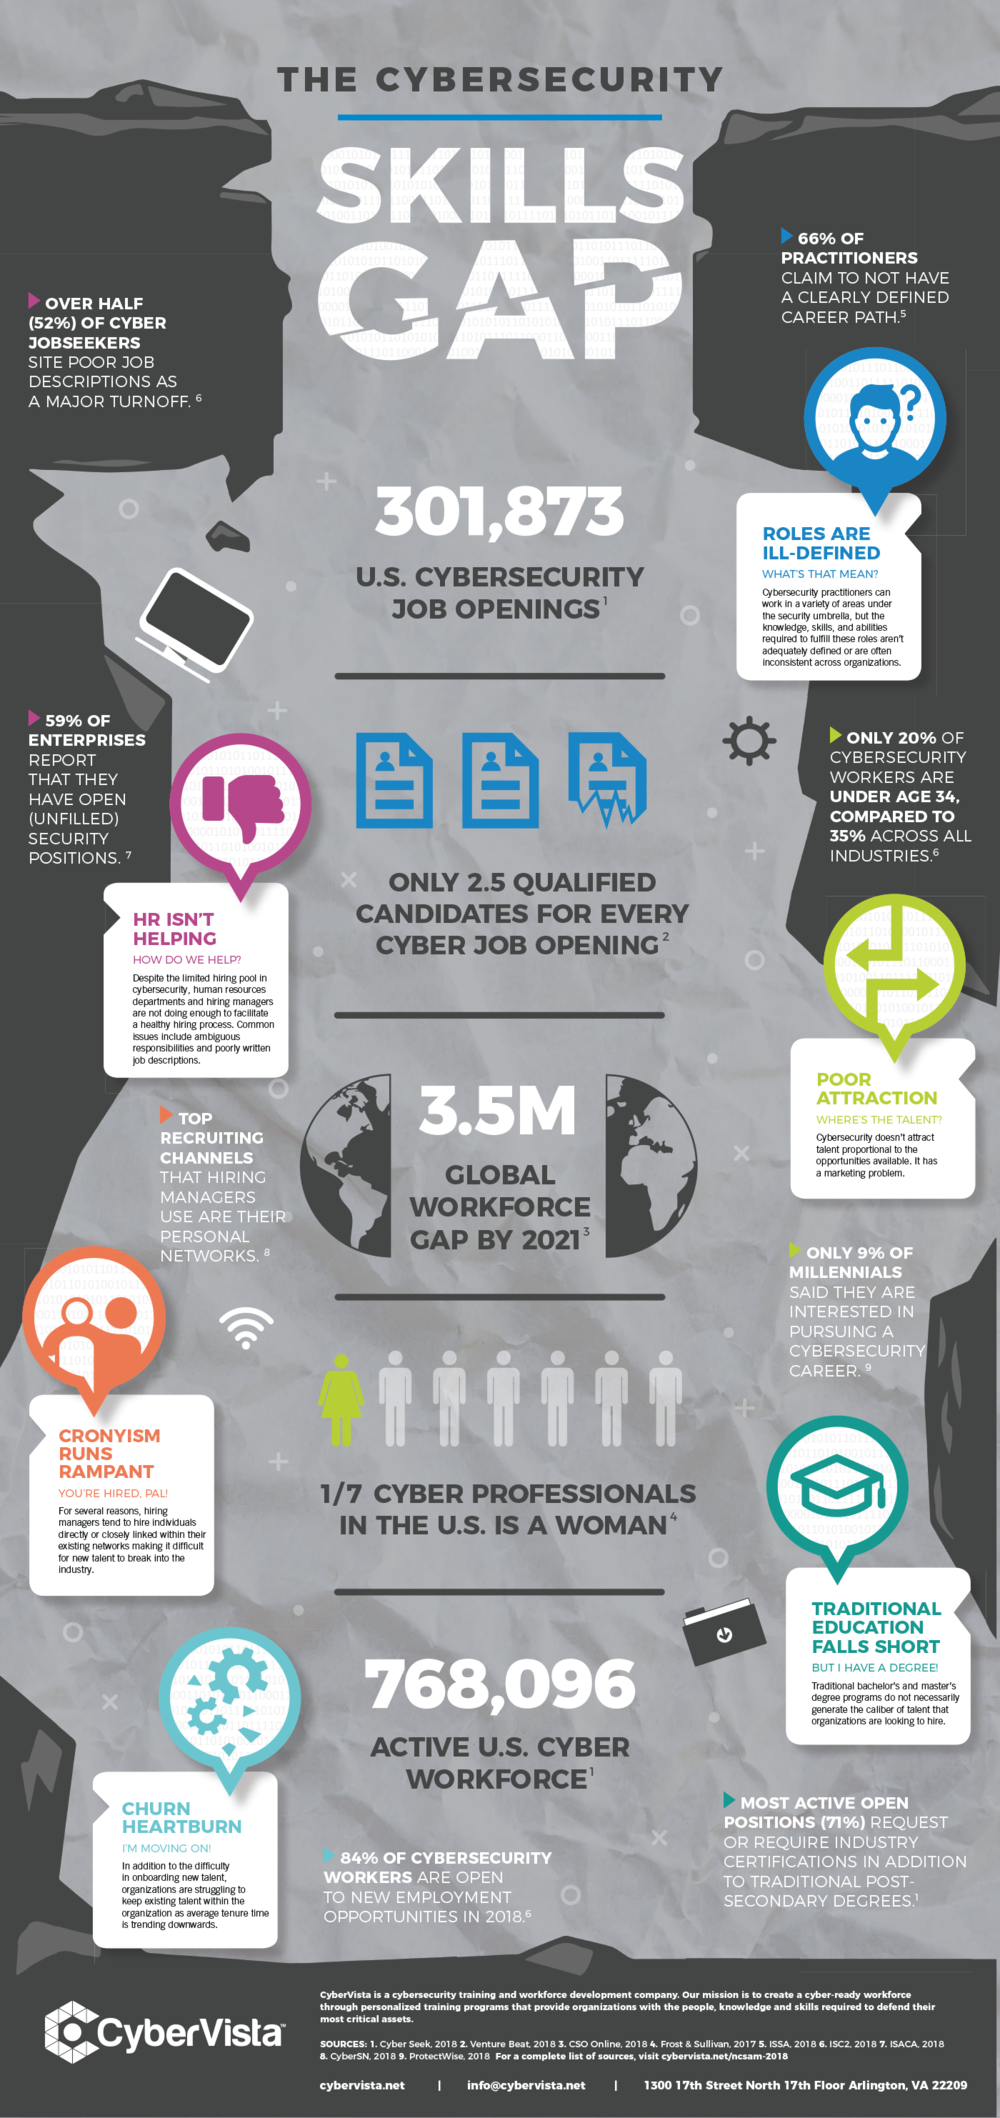 Cybersecurity Awareness Infographic for CyberVista